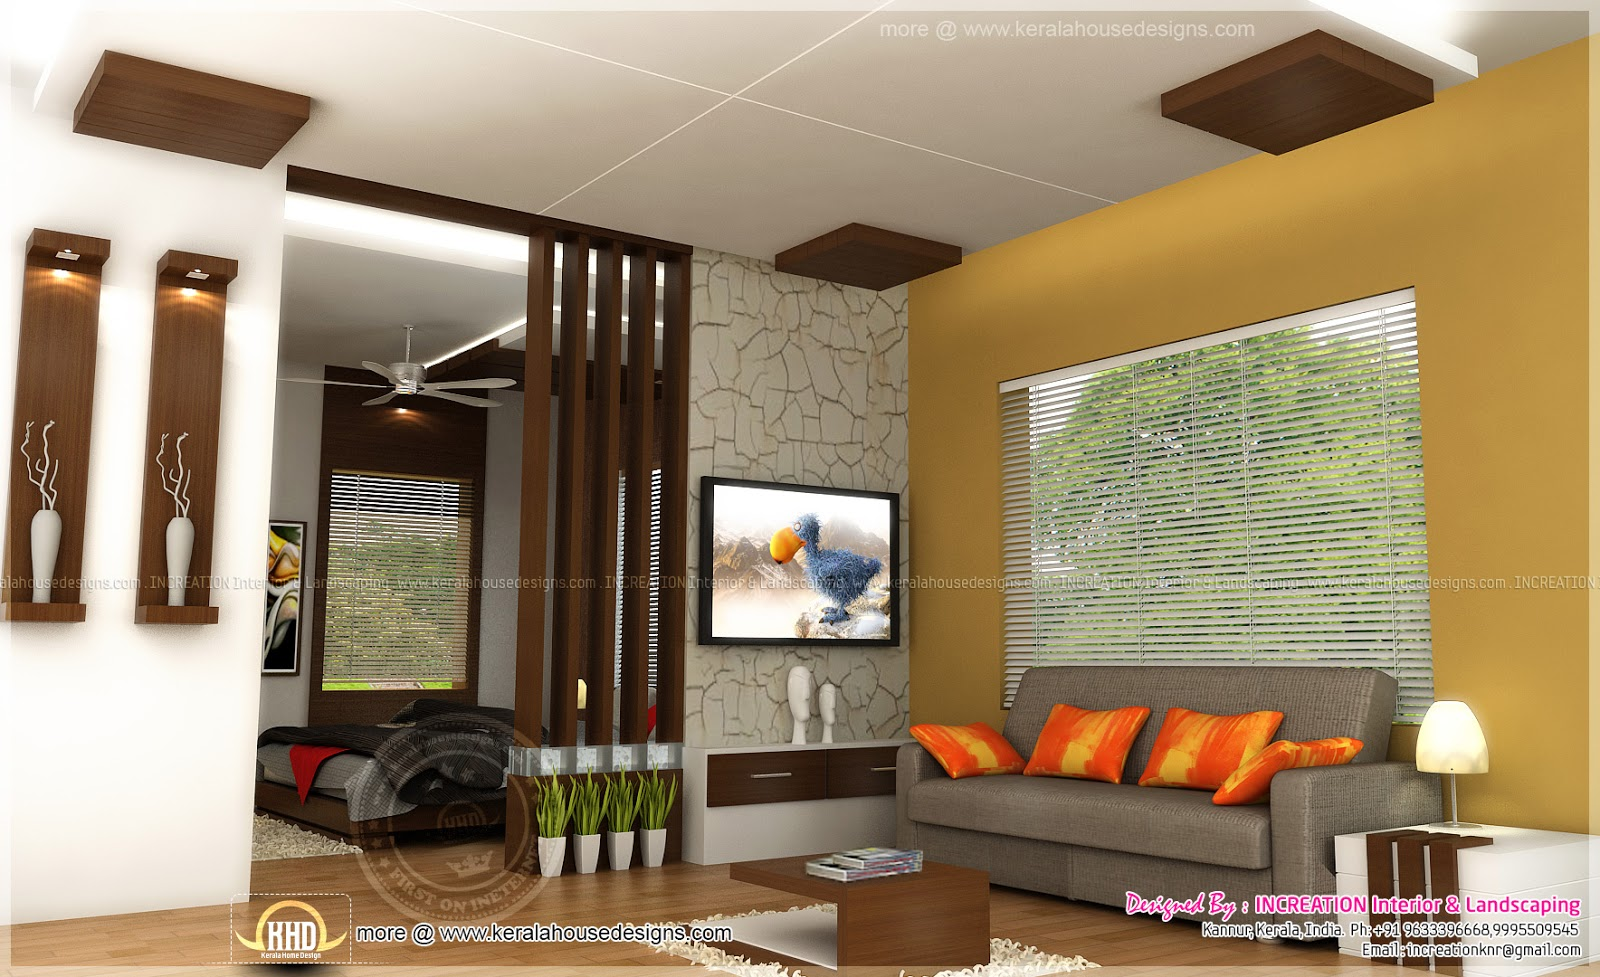 Interior designs from kannur kerala home kerala plans - Design of inside house ...